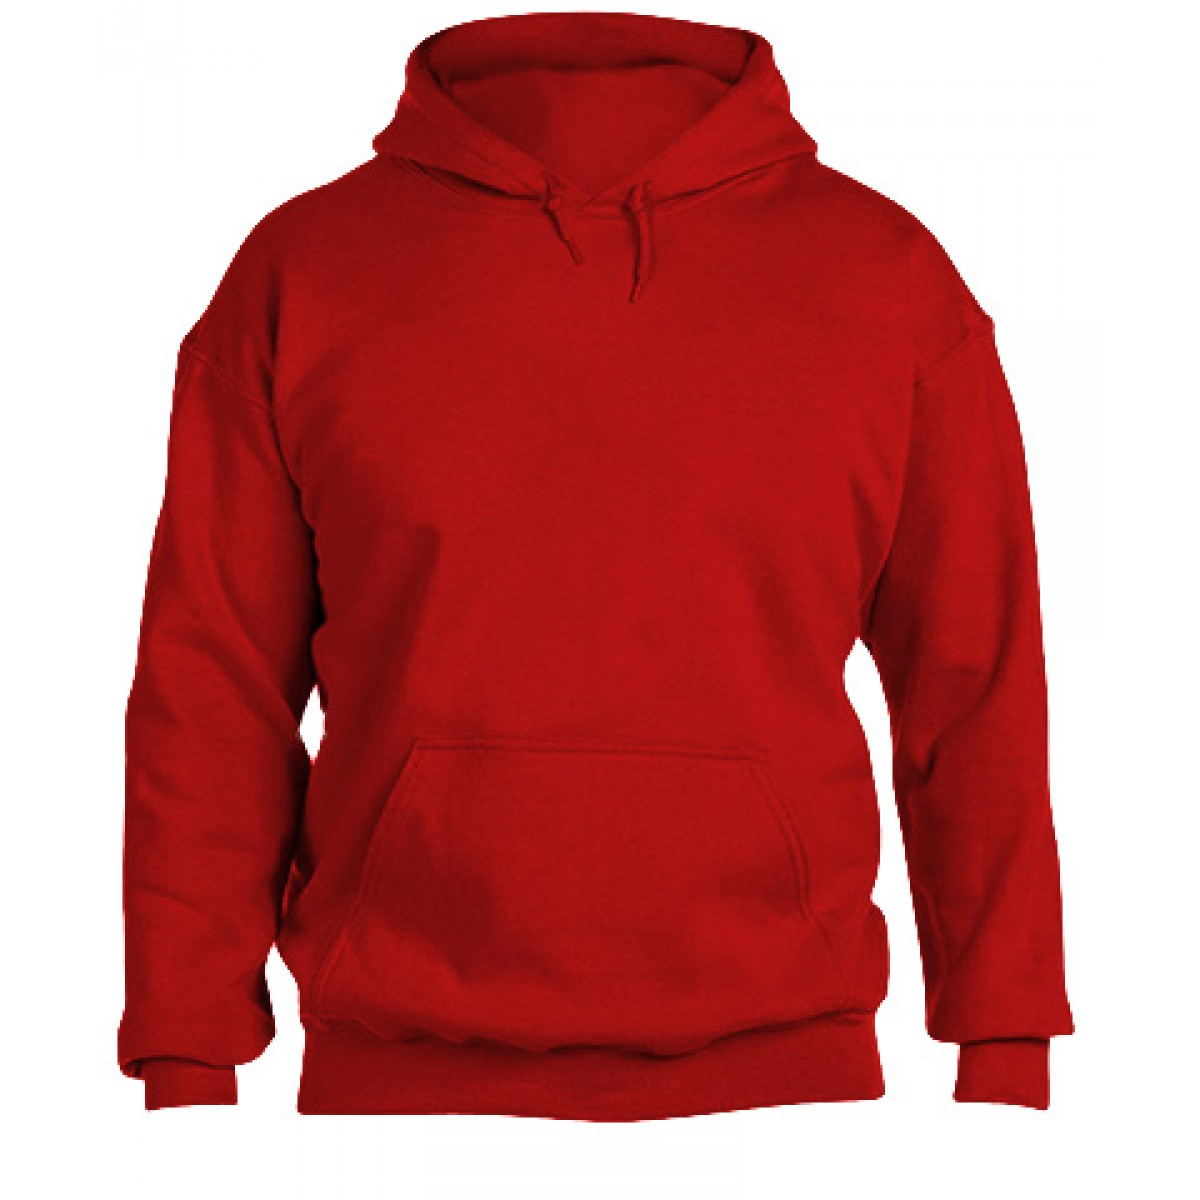 Hooded Sweatshirt 50/50 Heavy Blend -Red-S